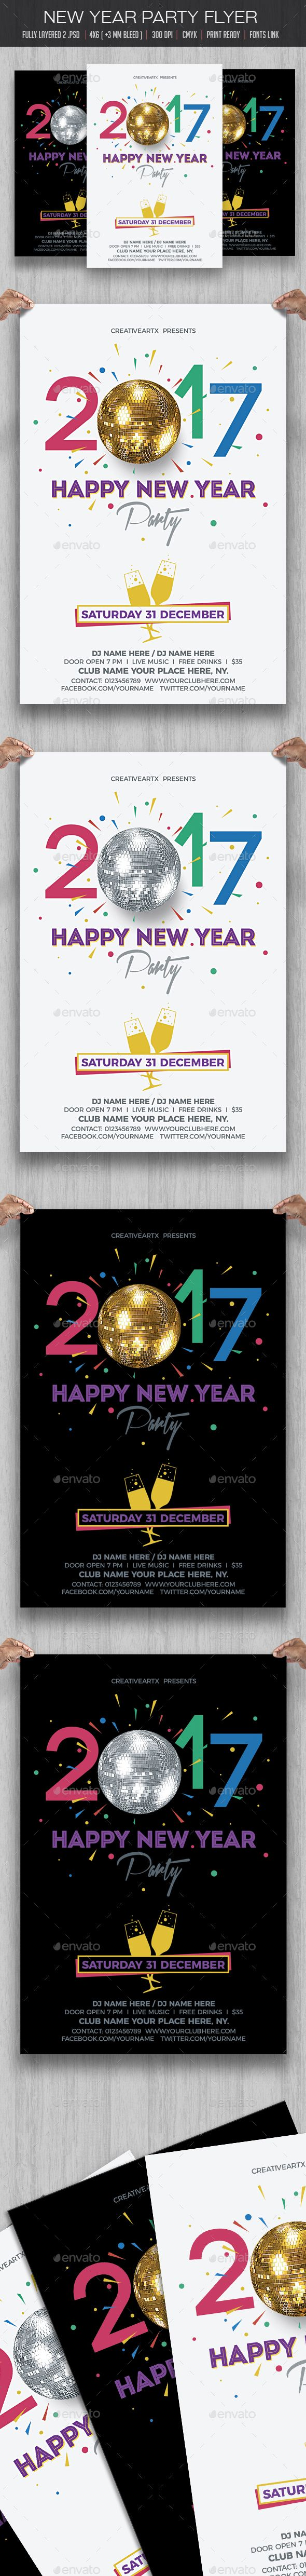 New Year Party Flyer. Download: https://graphicriver.net/item/new-year-party-flyer/18731445?ref=thanhdesign